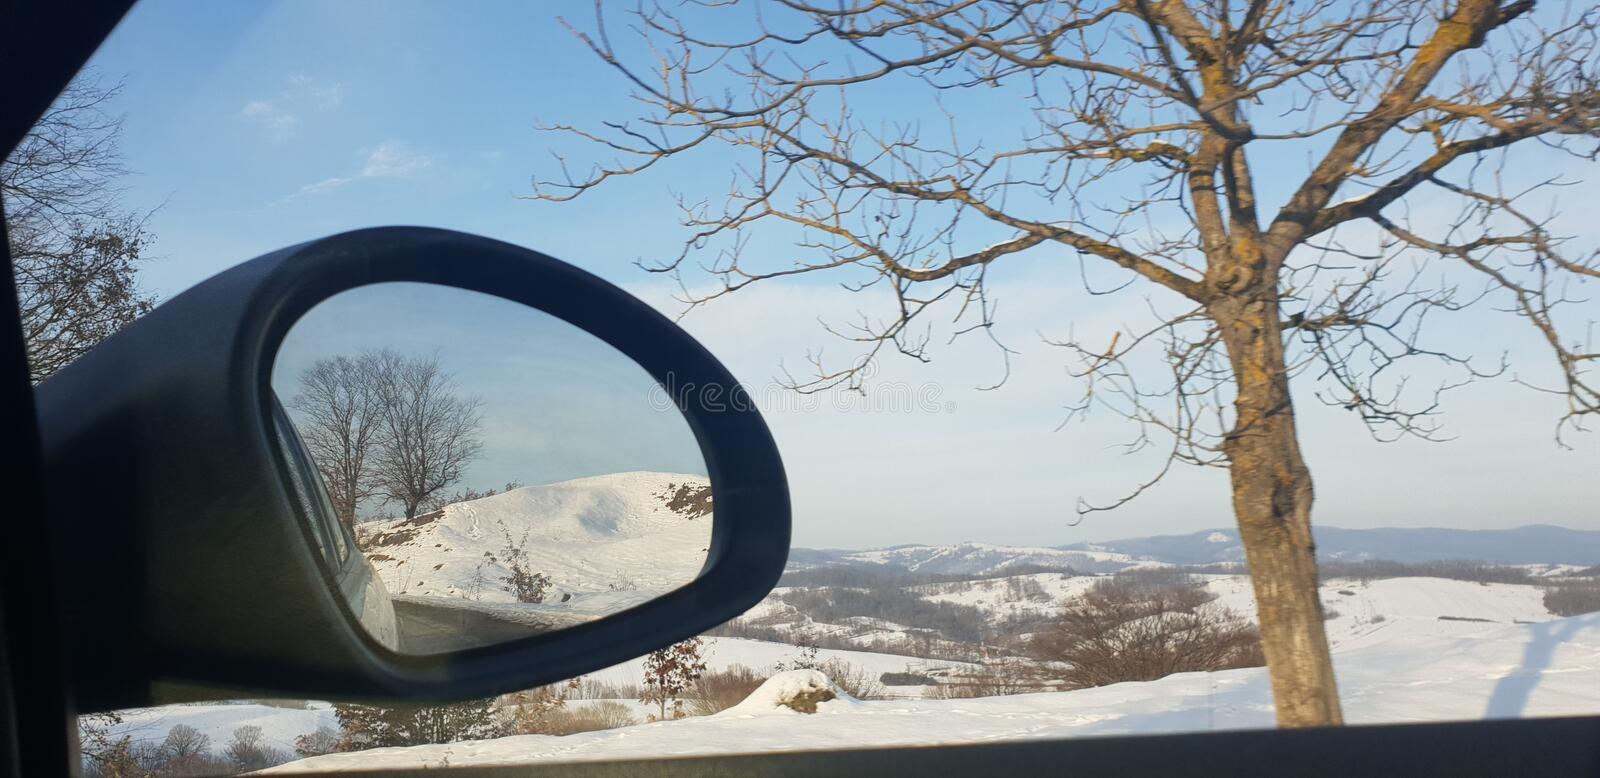 Winter road in early 2019 from cluj county to timisoara city highway  and rural road. Winter road early 2019 clun cluj county timisoara city highway rural royalty free stock images